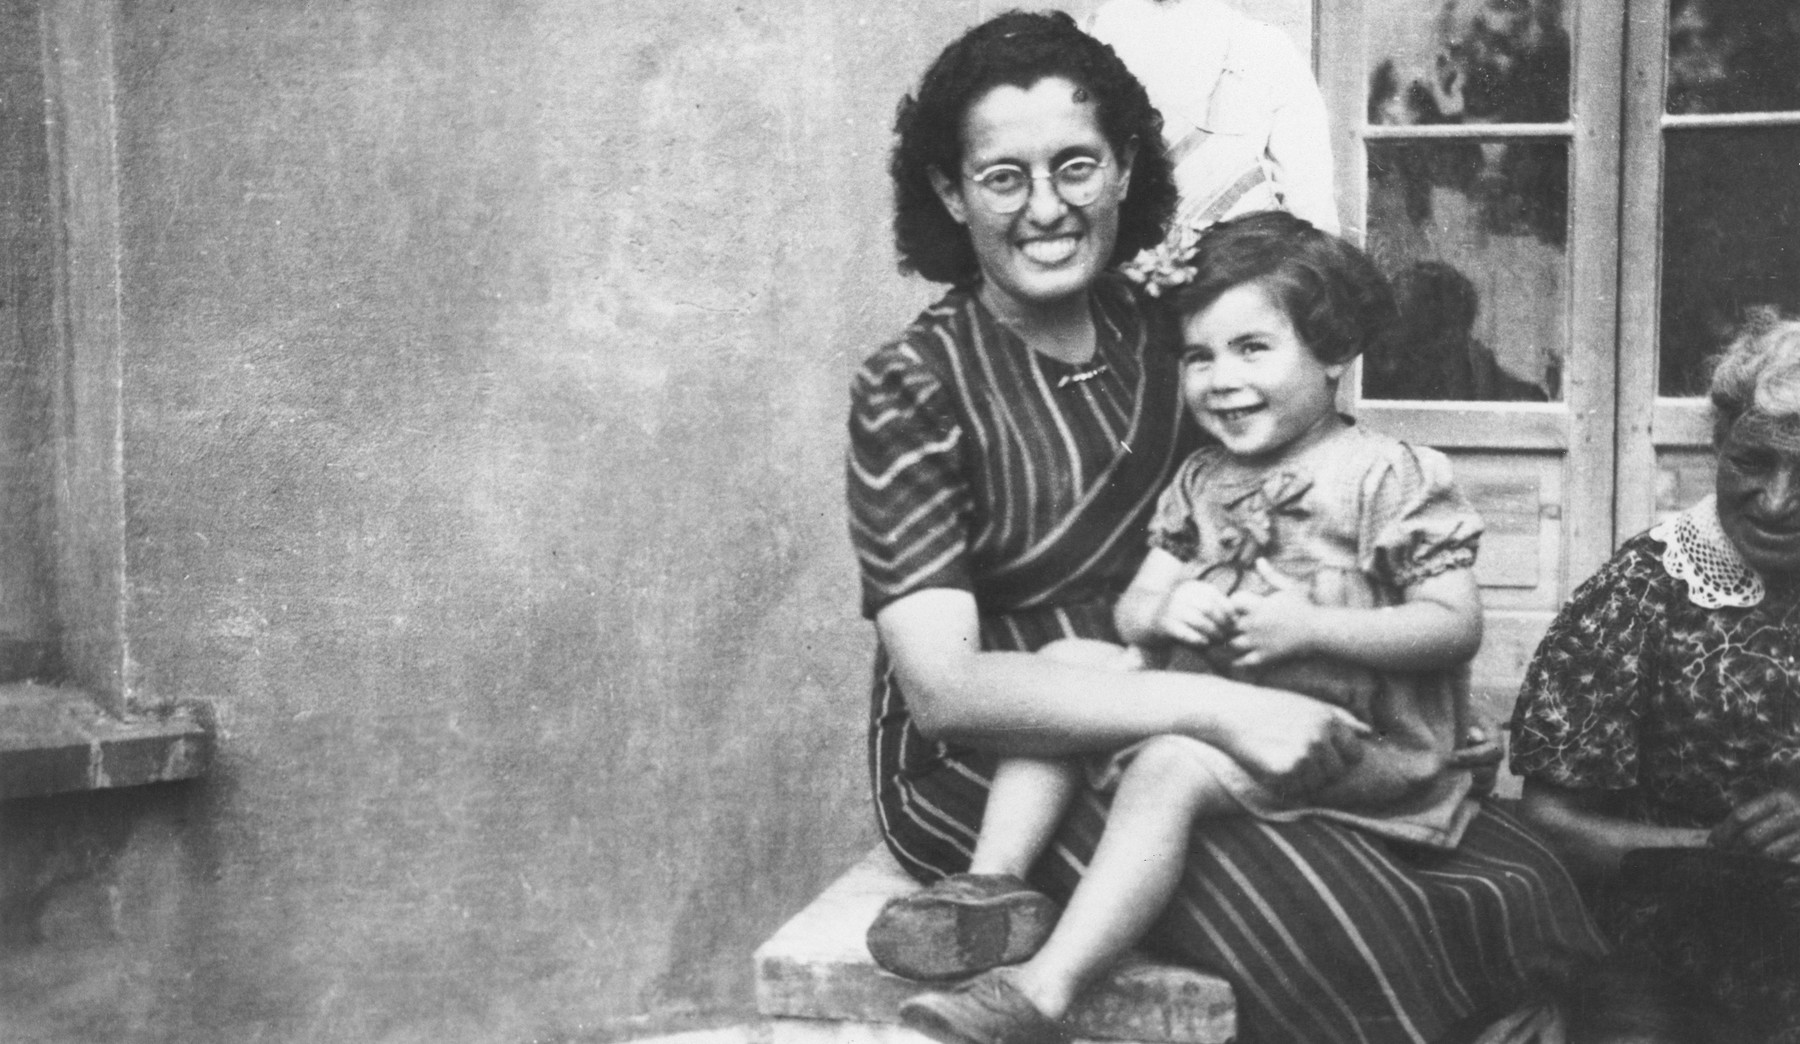 Mlle. Hermanova, a Czech Jewish nursery teacher, holds a young toddler on her lap.  The toddler pictured is Ryfka Isacovic, from  Czechoslovakia., who stayed in Joseph Fisera's MACE school in Vence during the war.